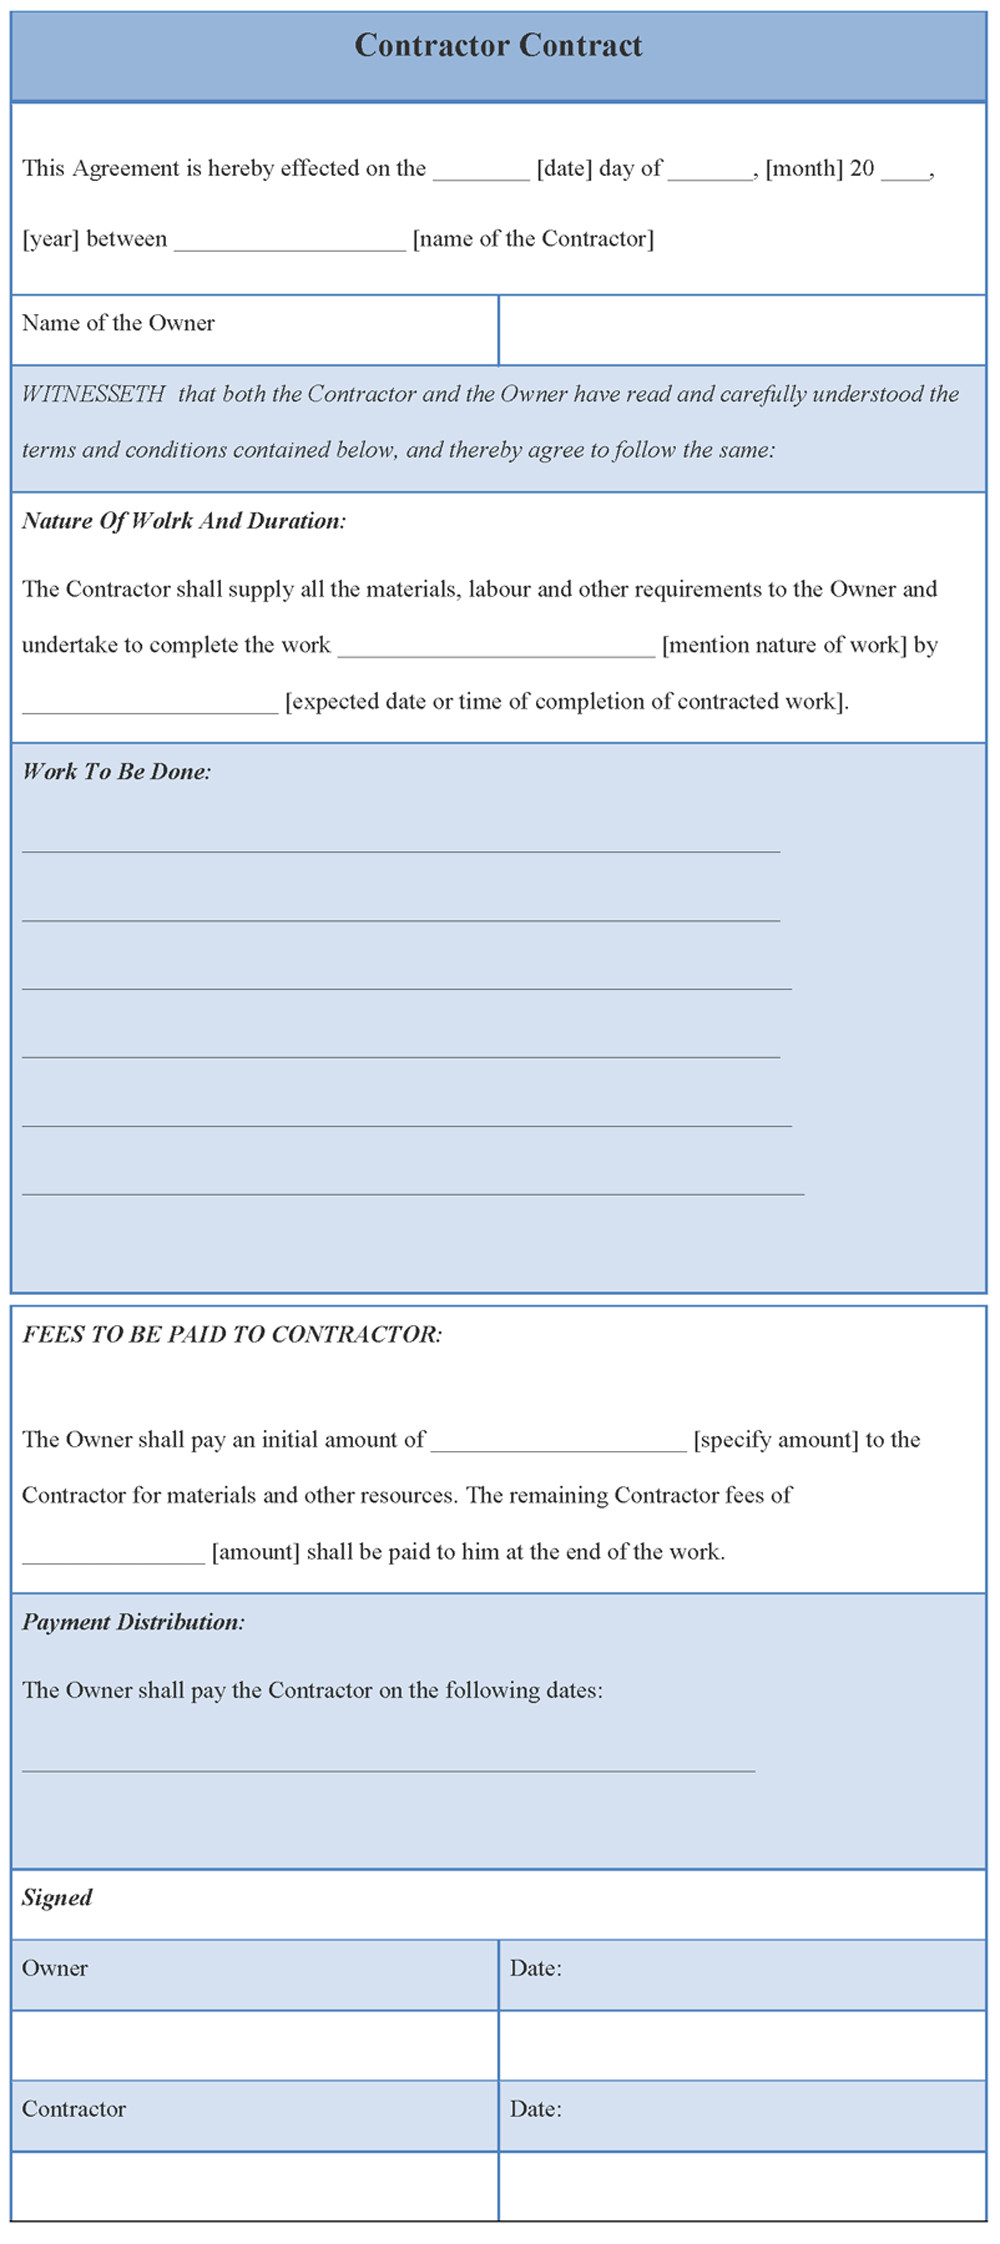 qualified contractor contract agreement template example featuring work to be done note